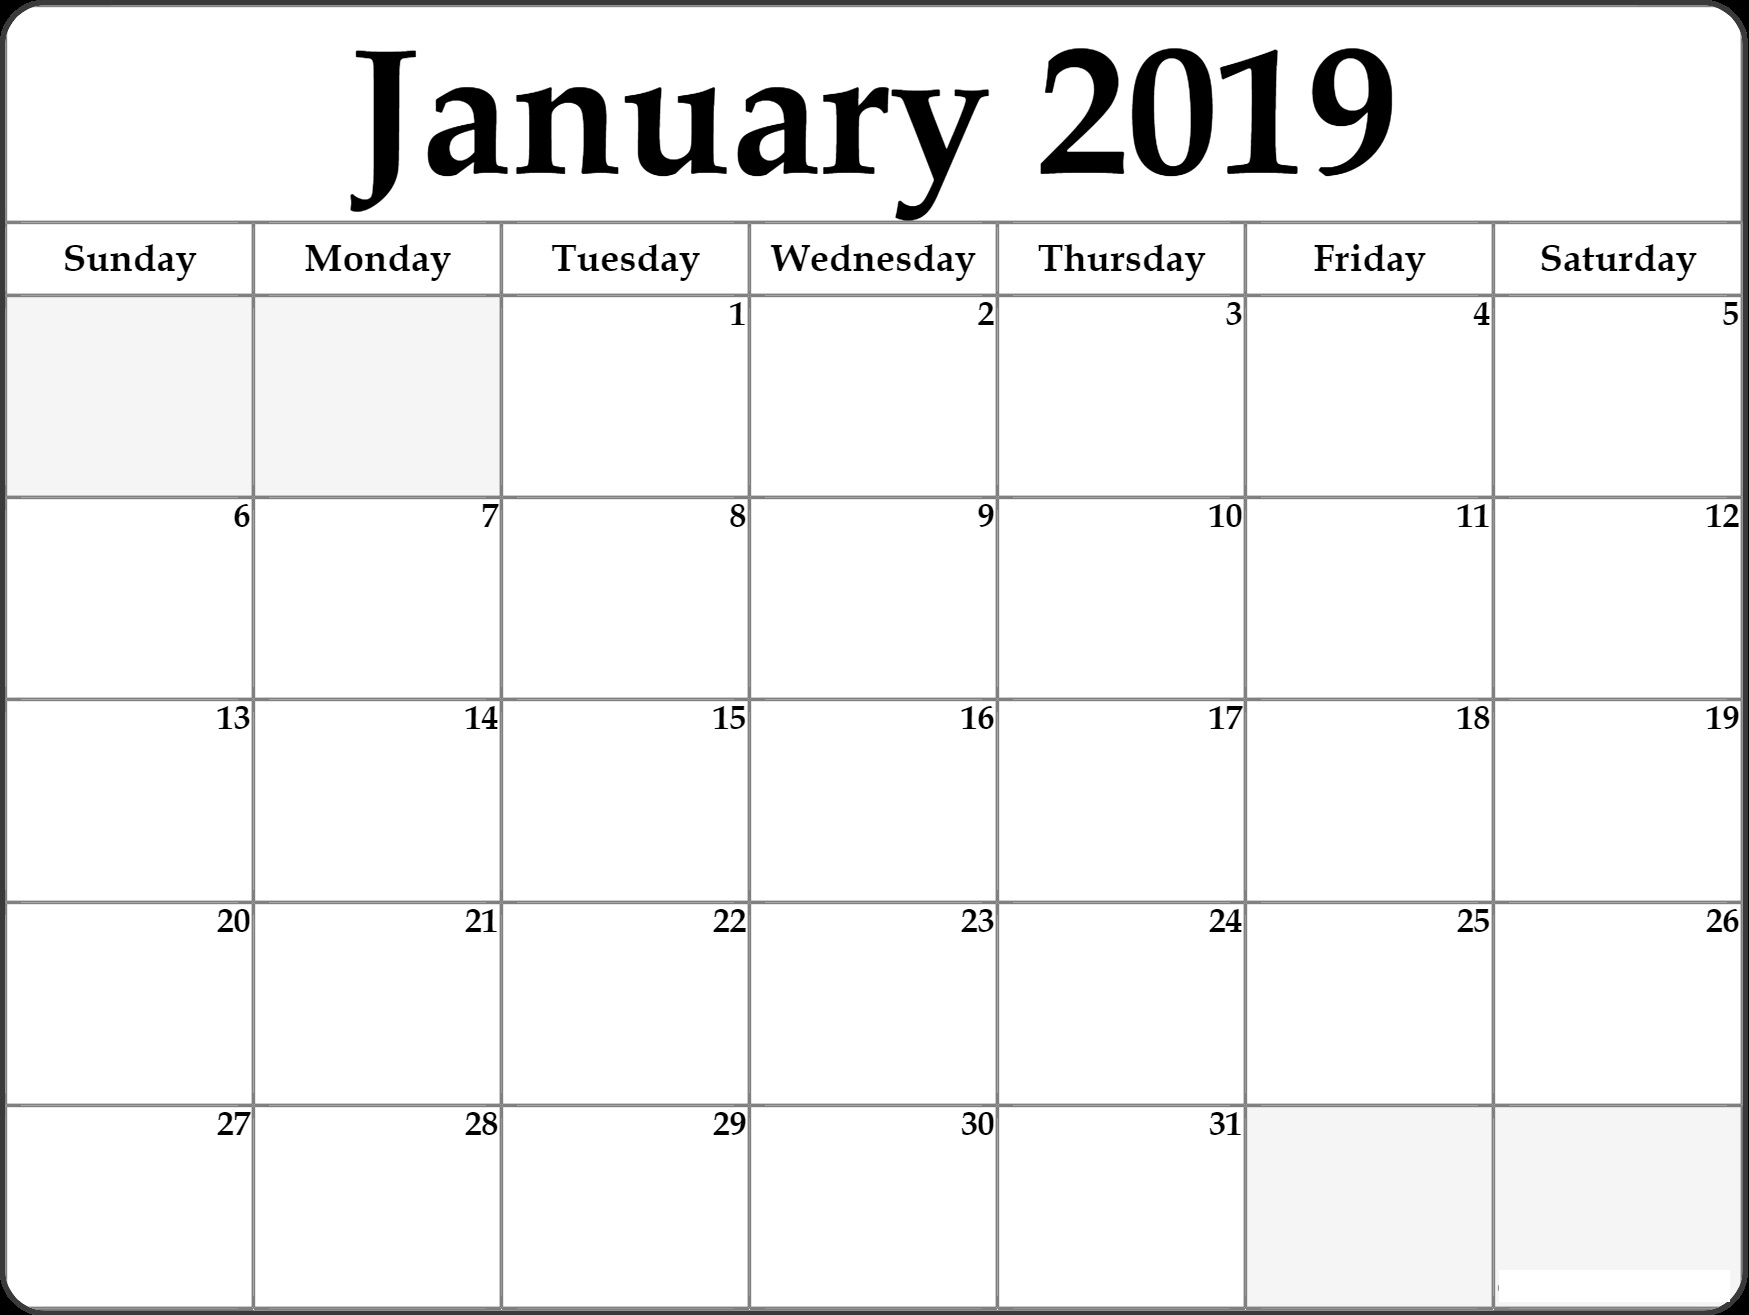 free january 2019 calendar template download march 2019 calendar::January 2019 Monthly Calendar